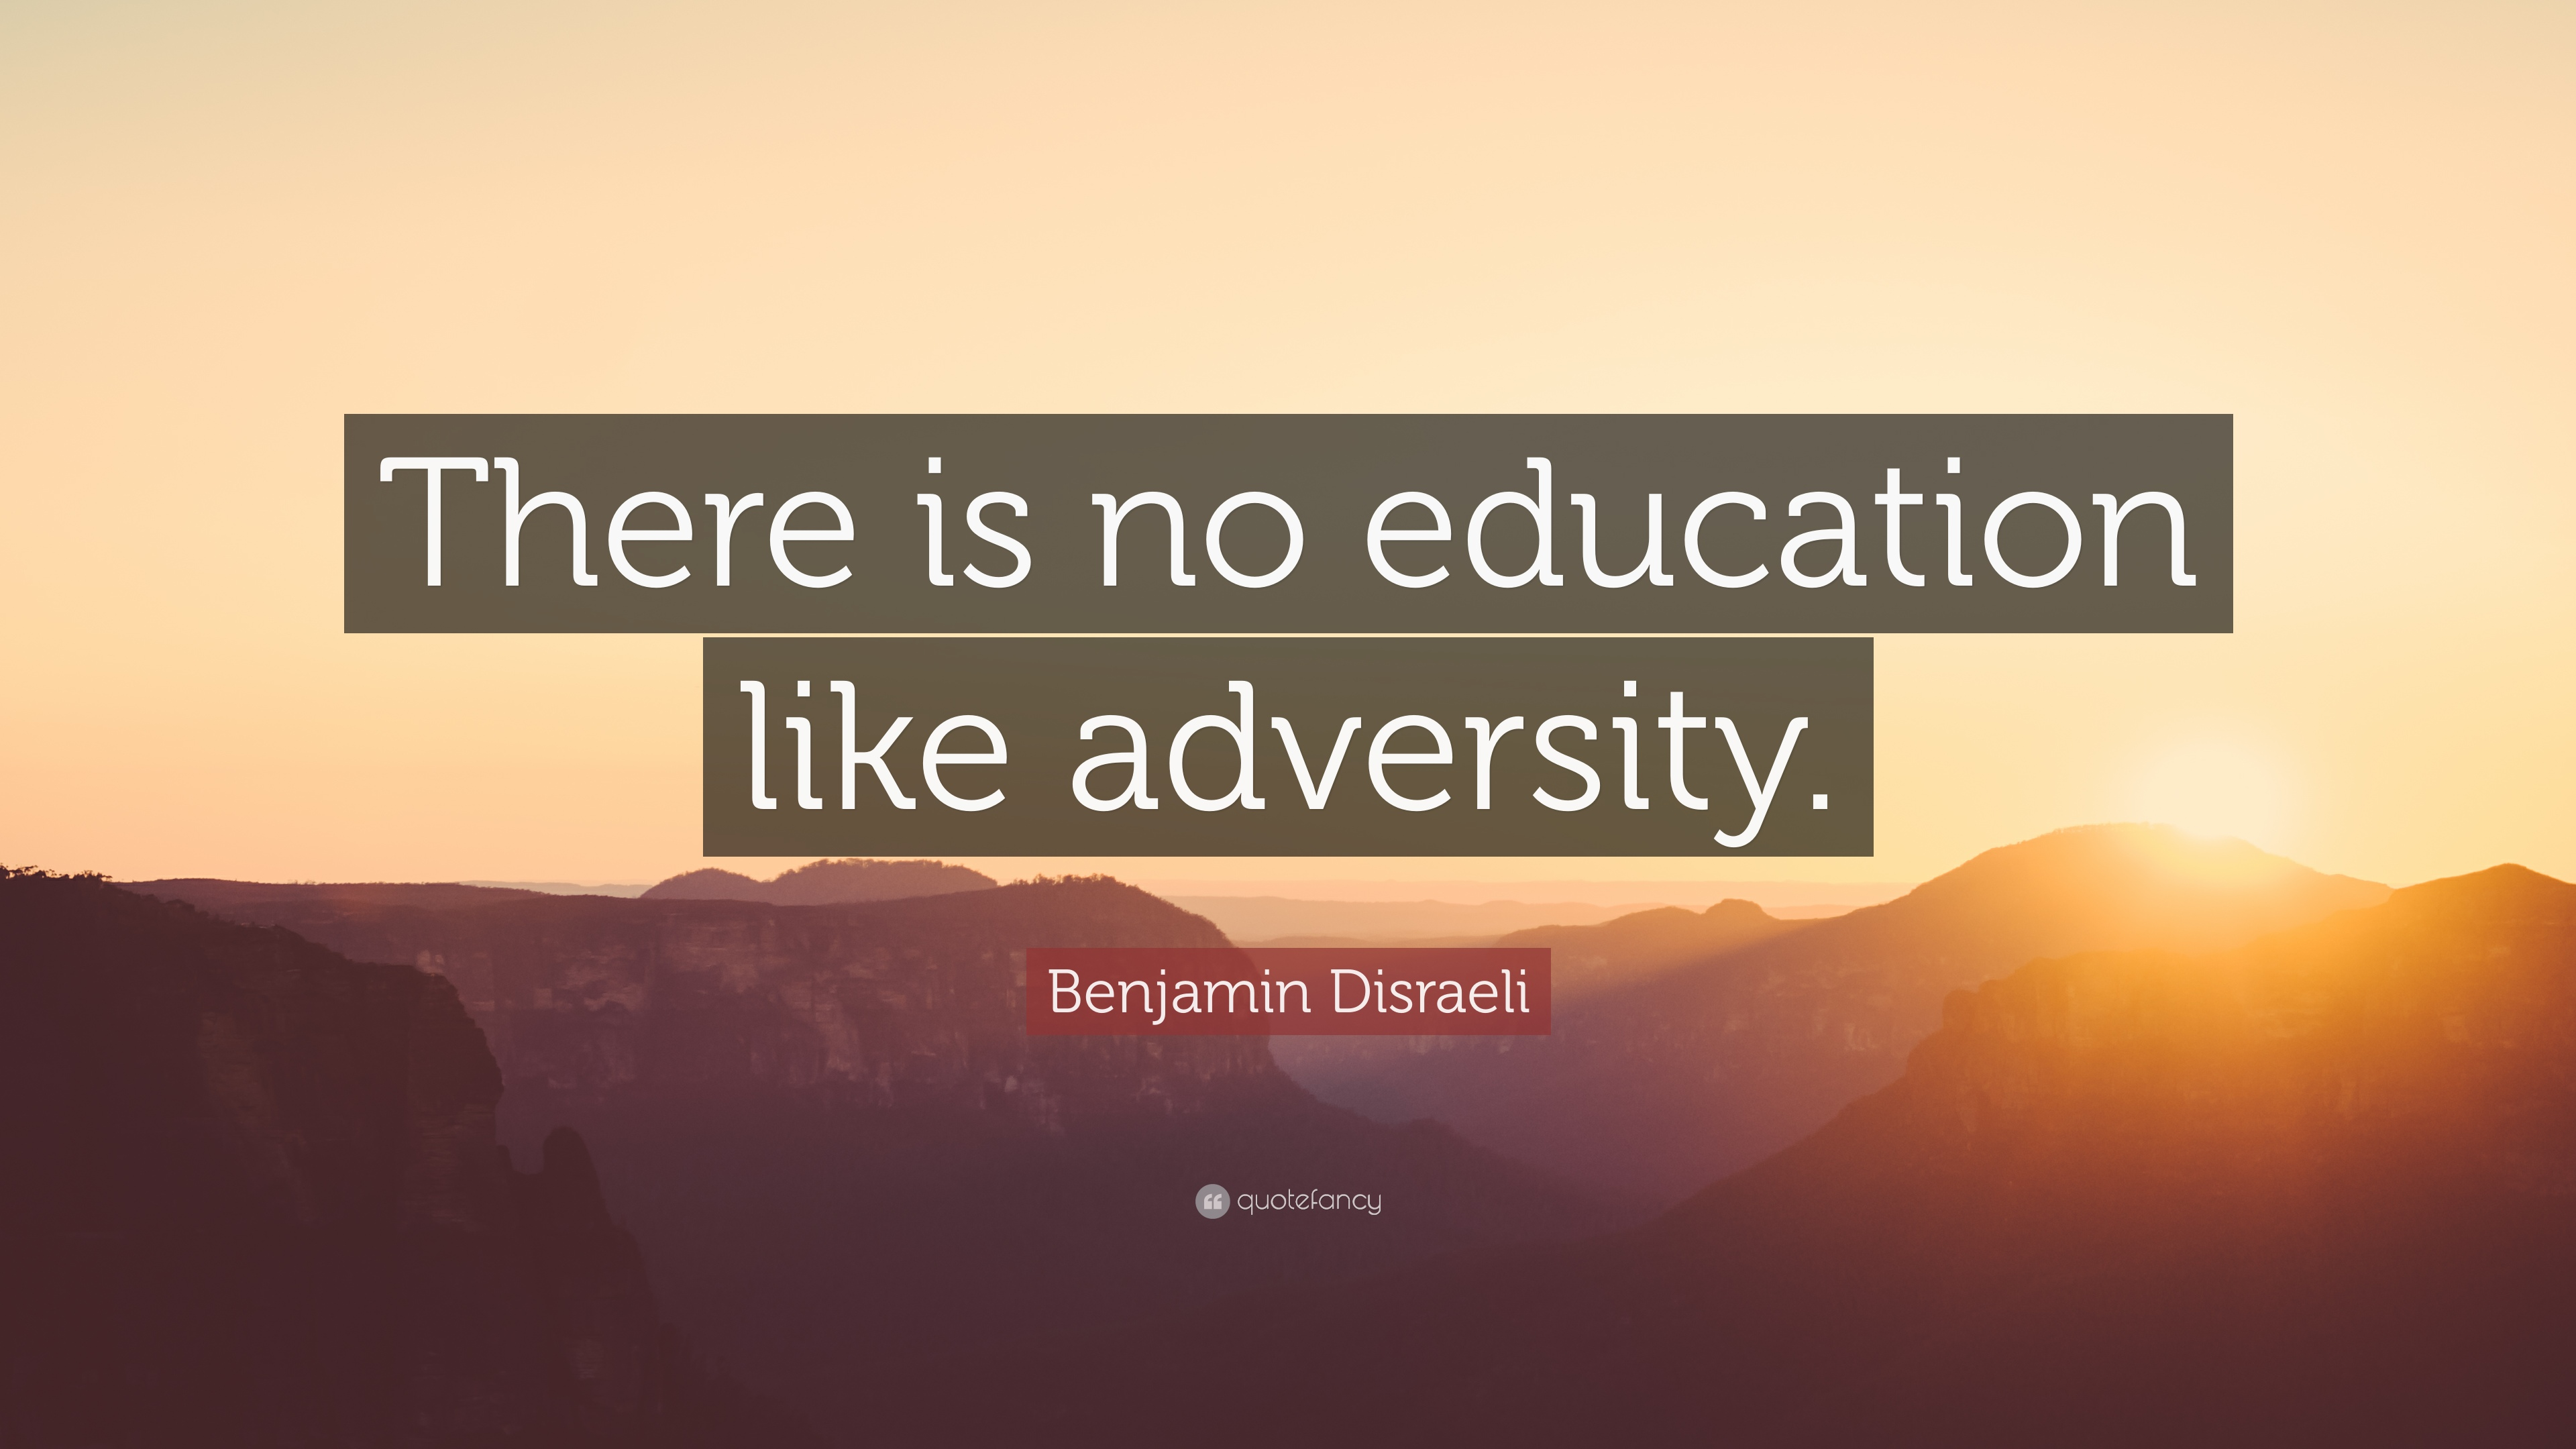 there is no education like adversity Briefly describe a situation where you had to overcome adversity  adversity vs difficulty  there is no education like adversity.